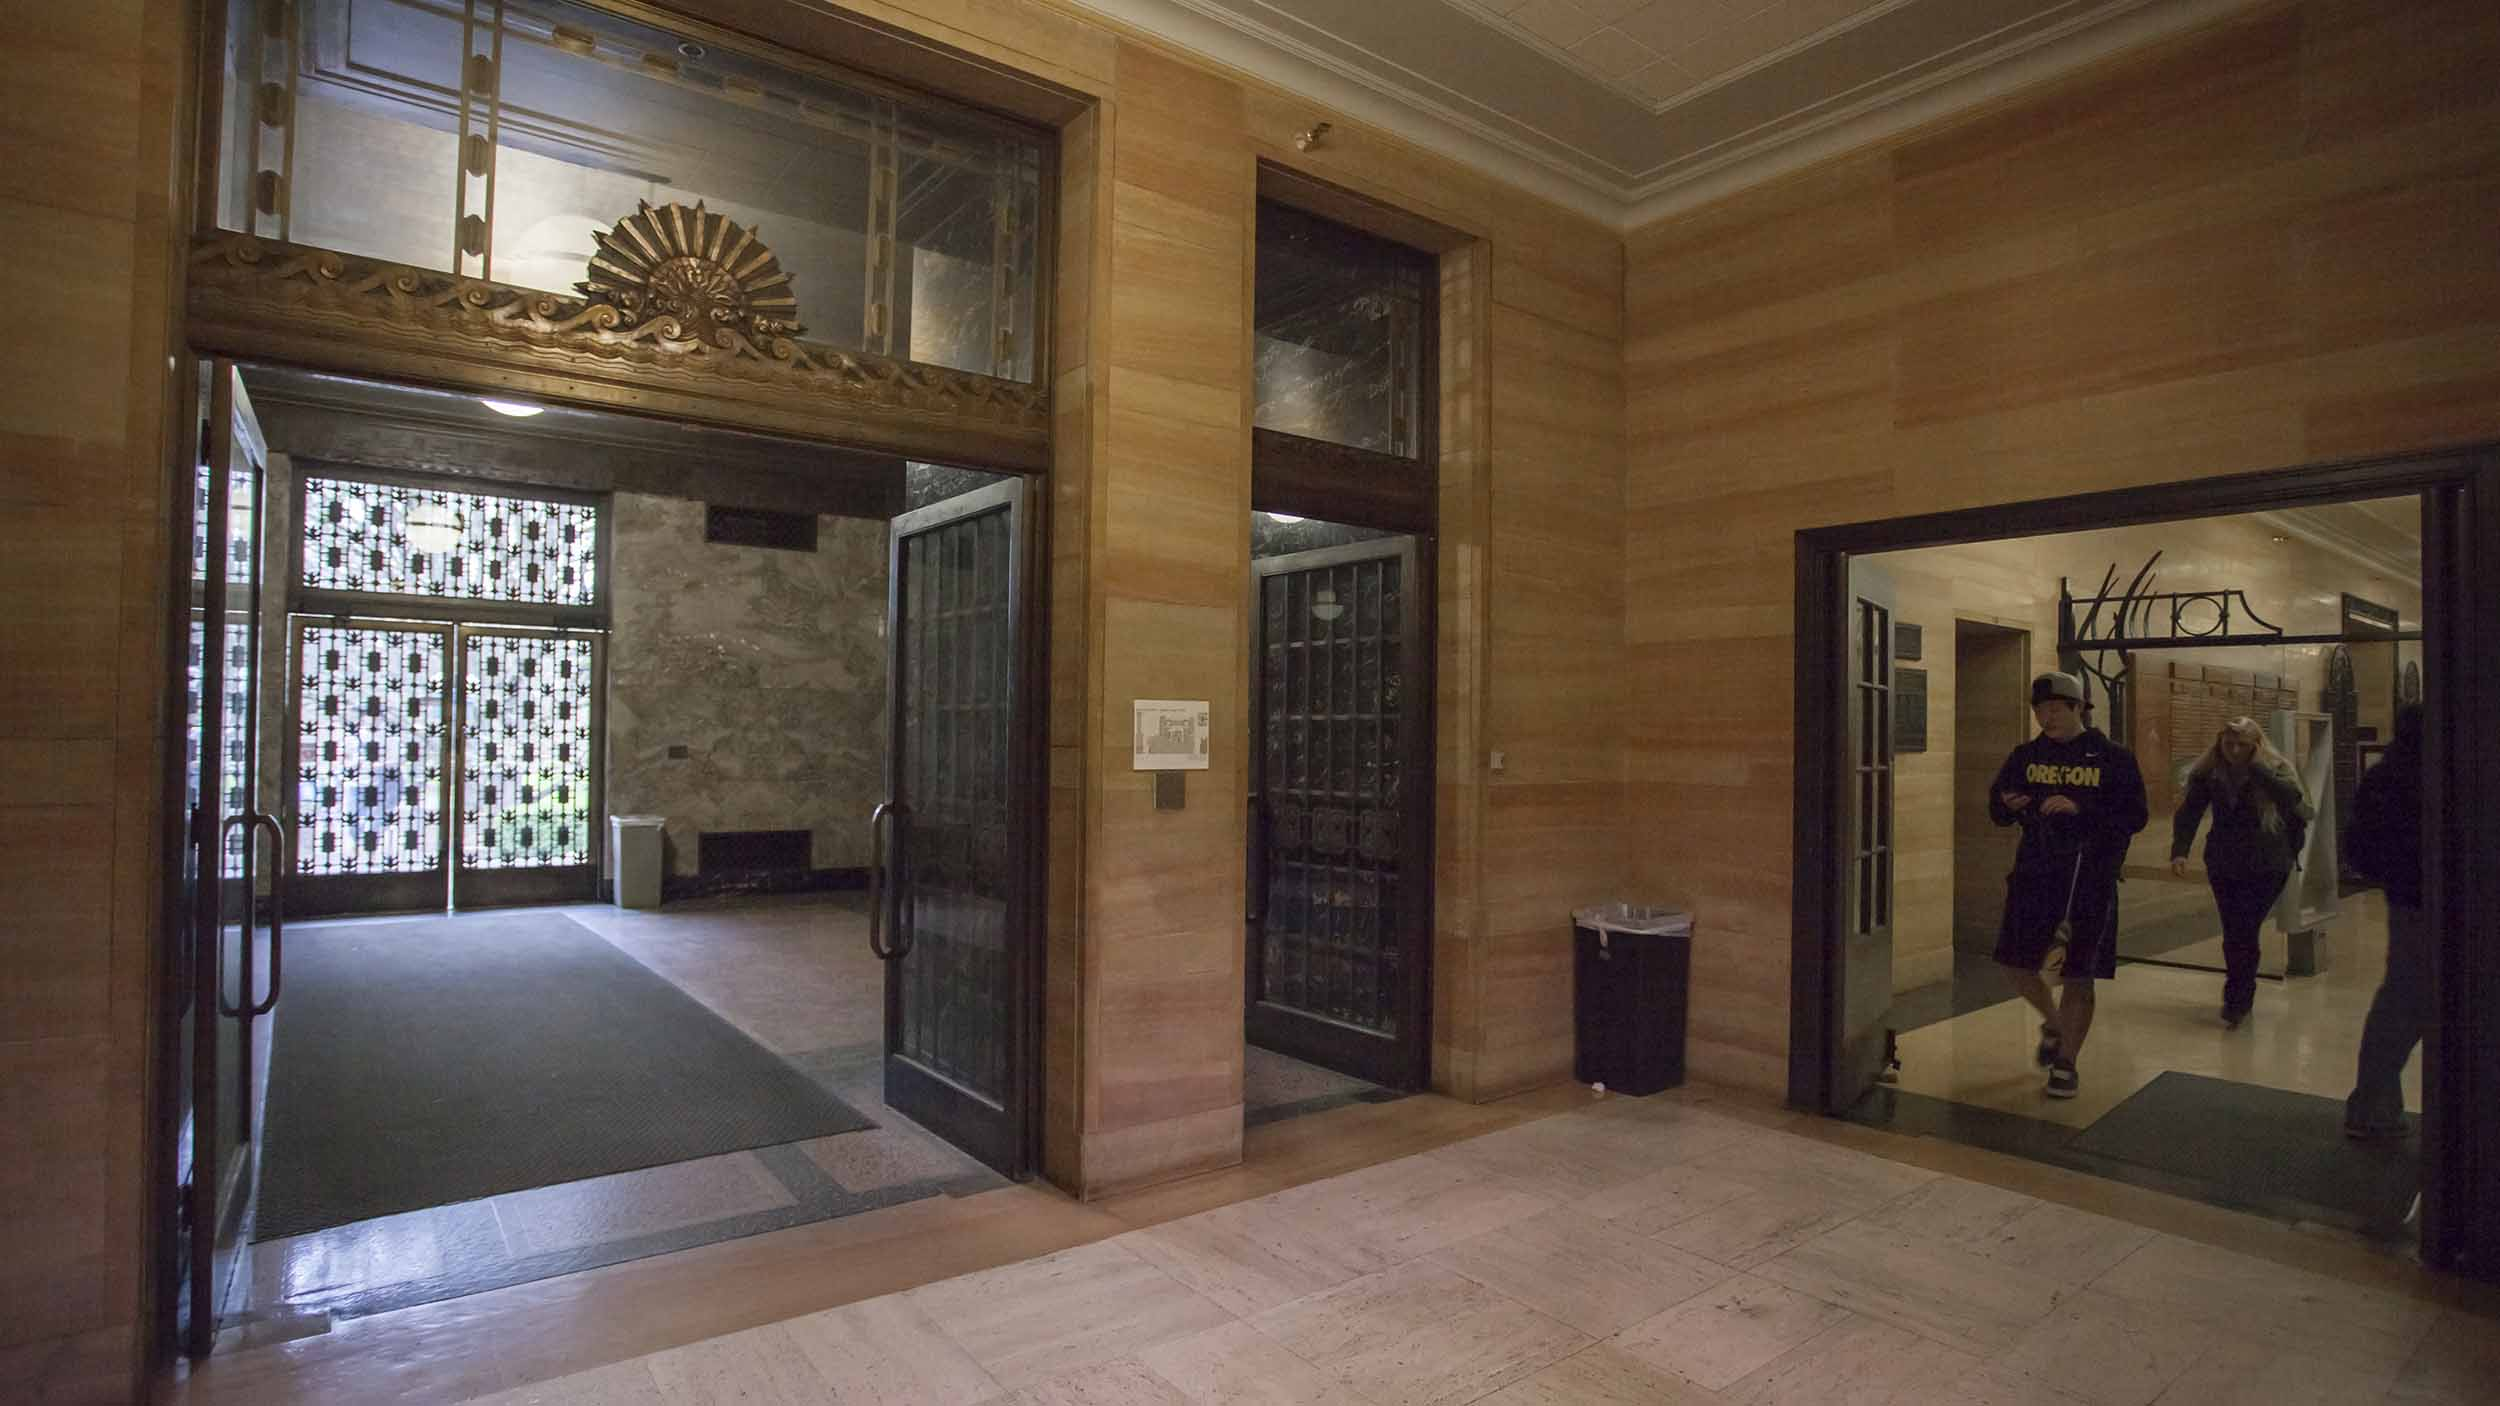 Knight Library exit doors